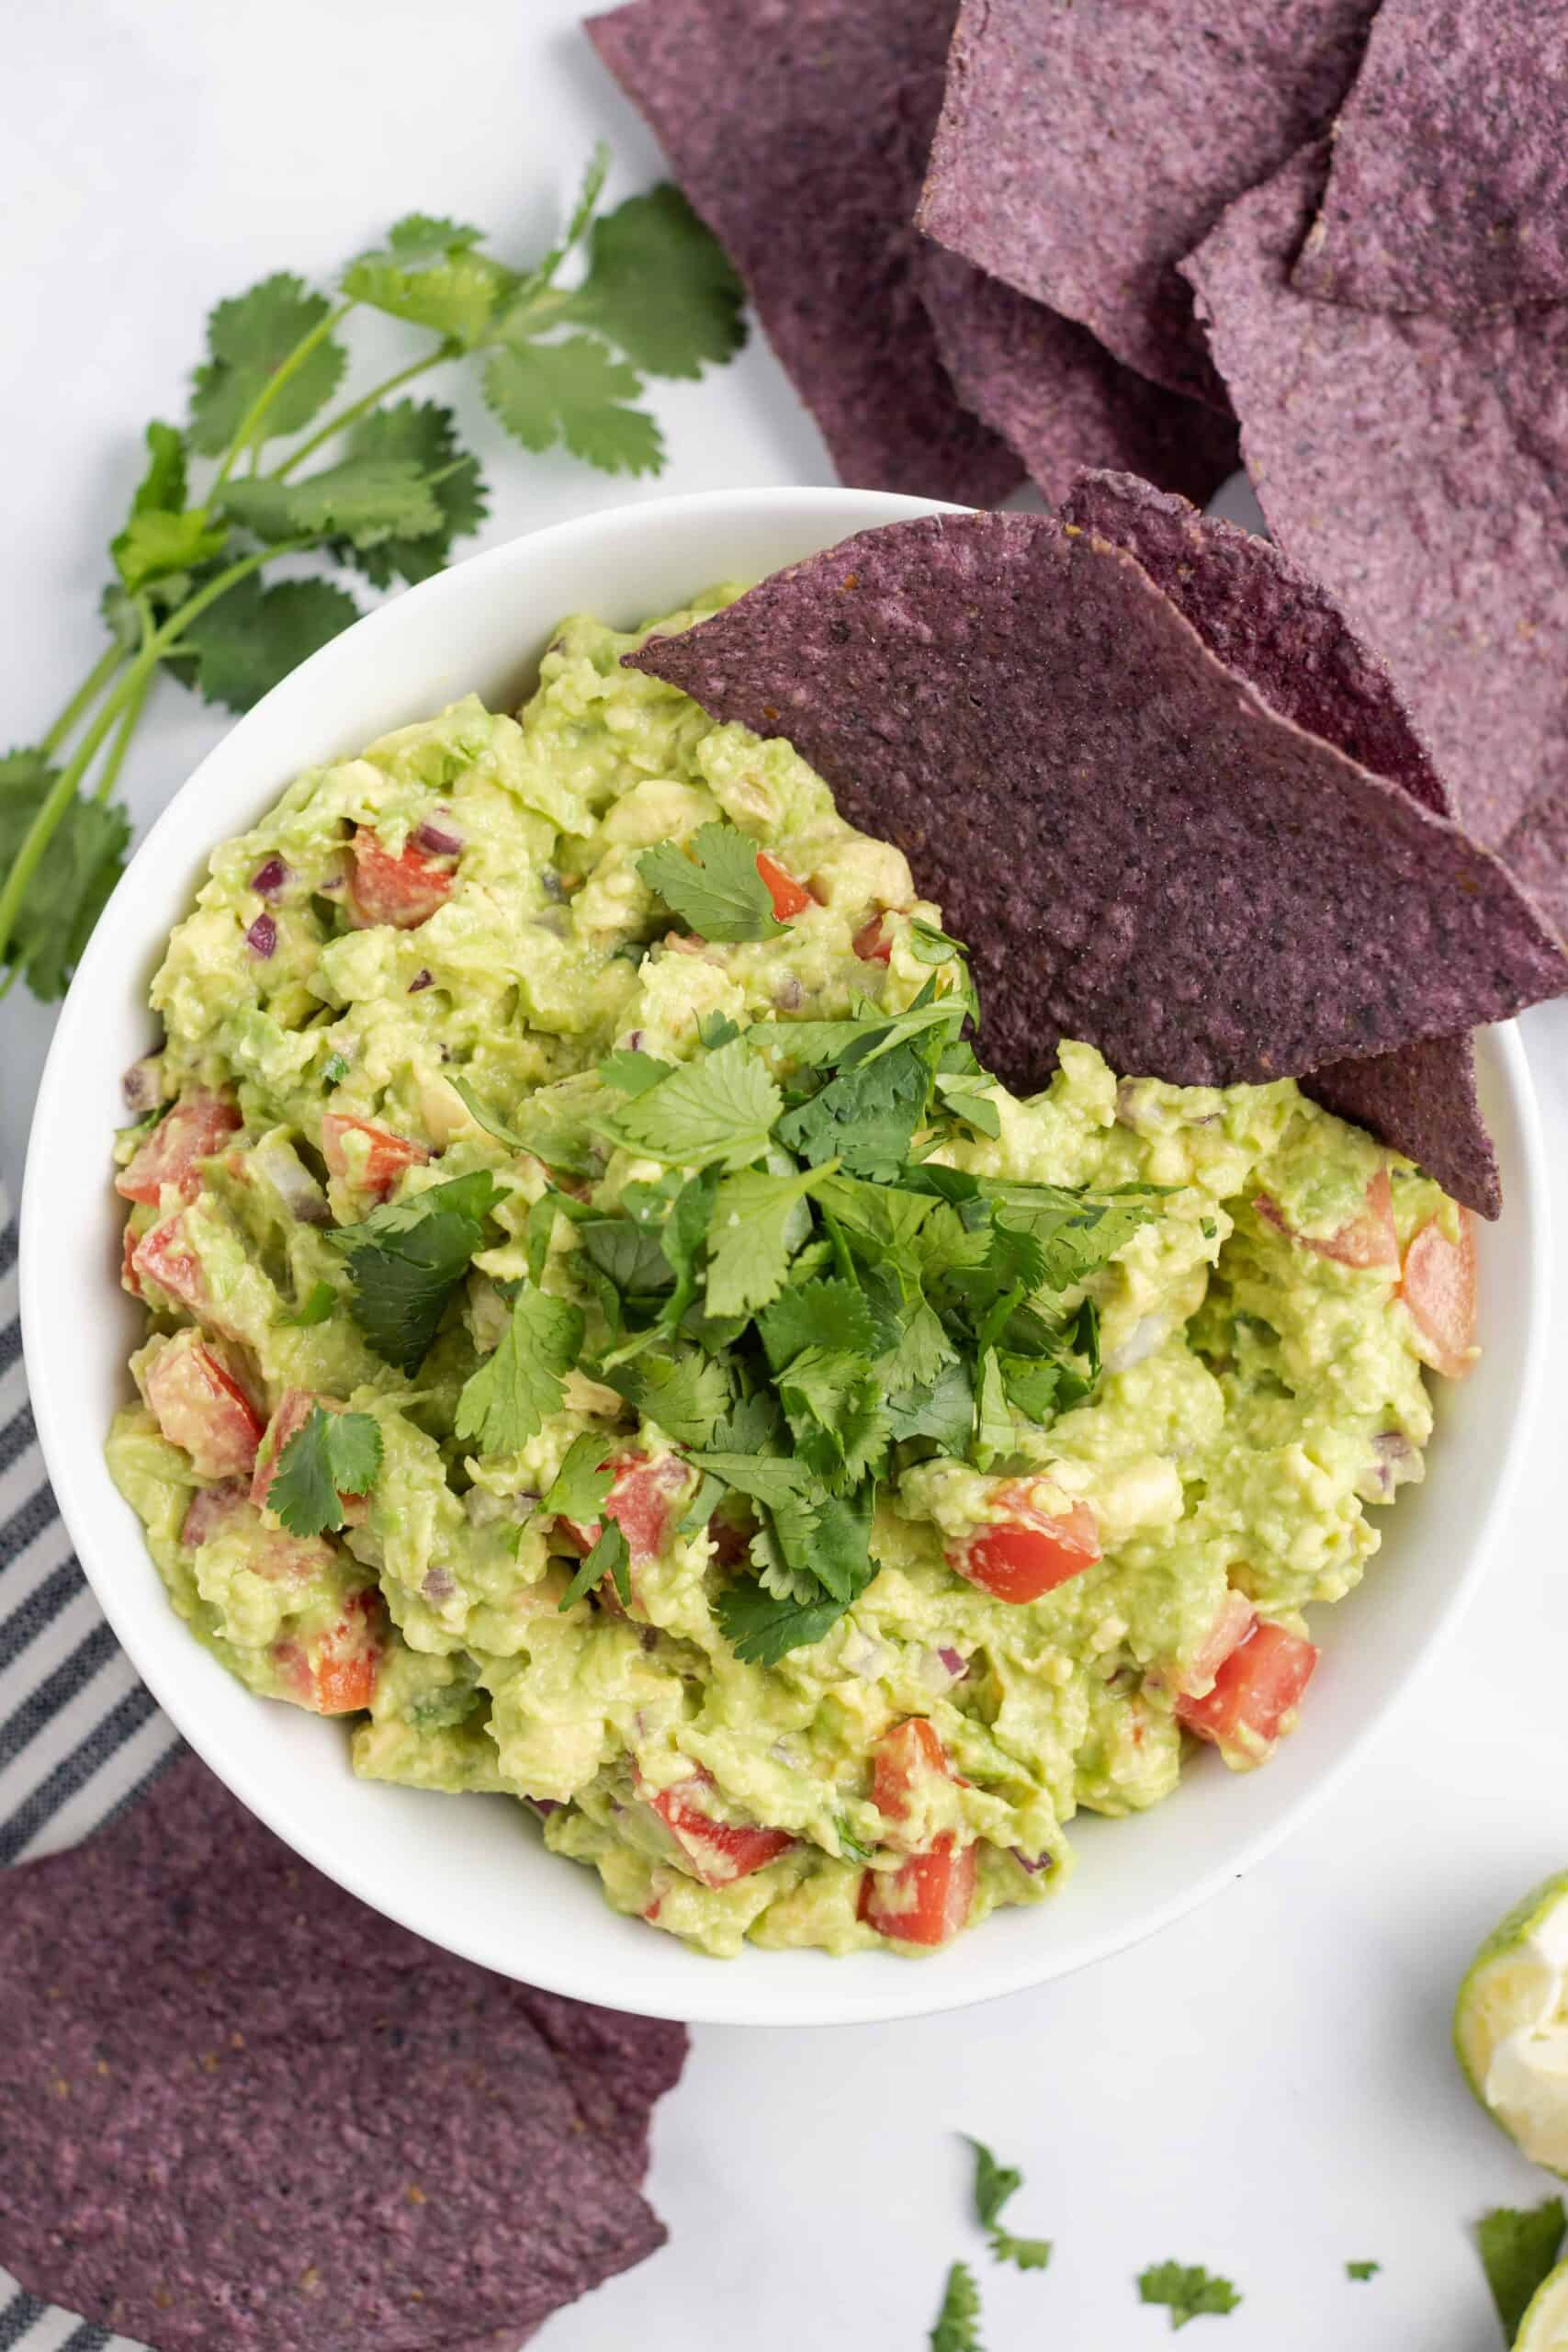 Bowl of chunky guacamole garnished with blue corn chips and cilantro